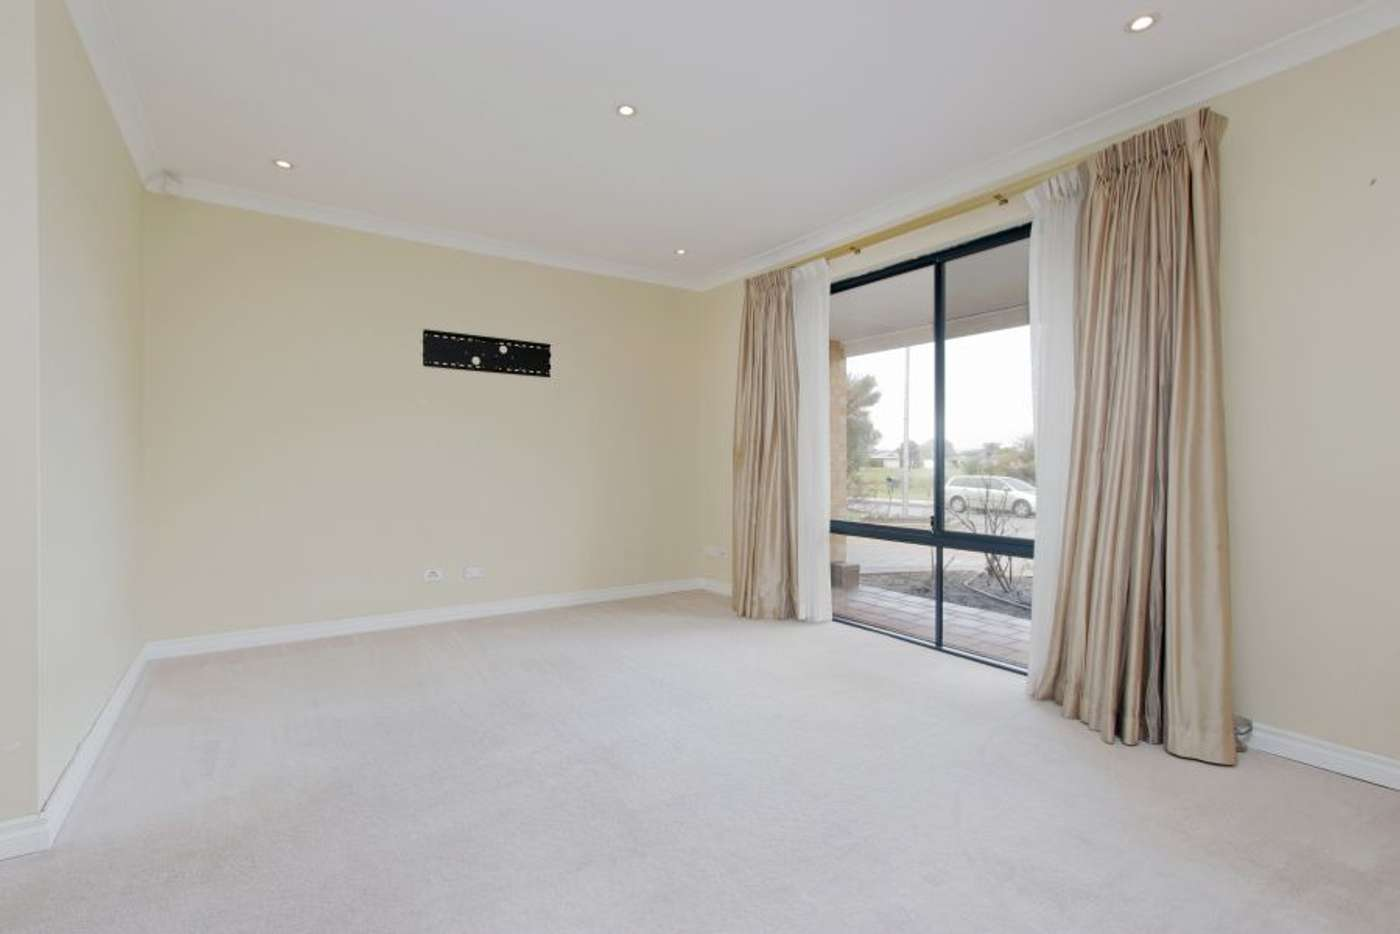 Seventh view of Homely house listing, 43 Coonawarra Drive, Caversham WA 6055